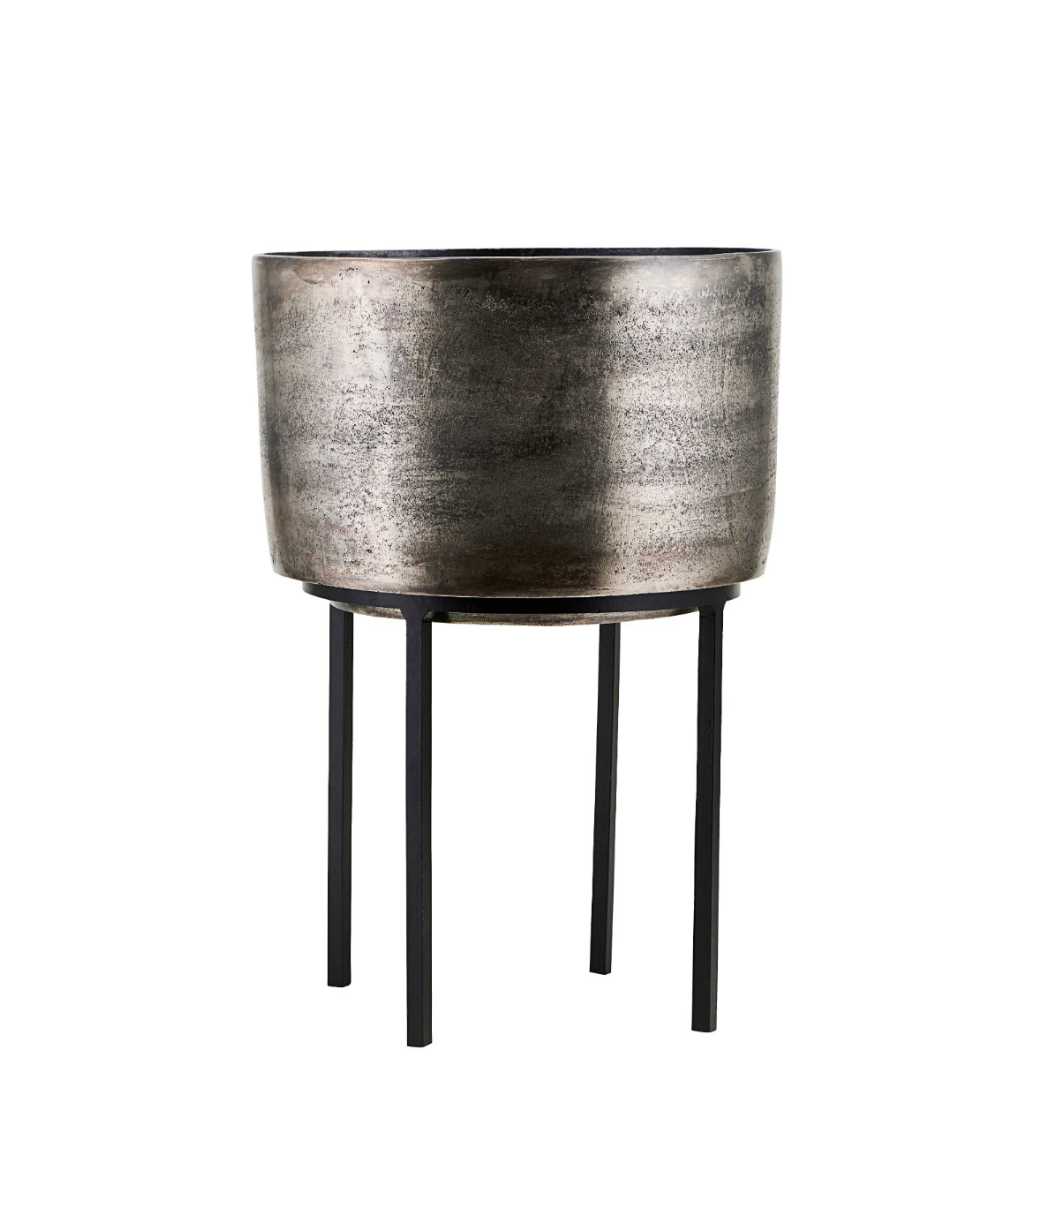 Kazi Silver Planter and Stand